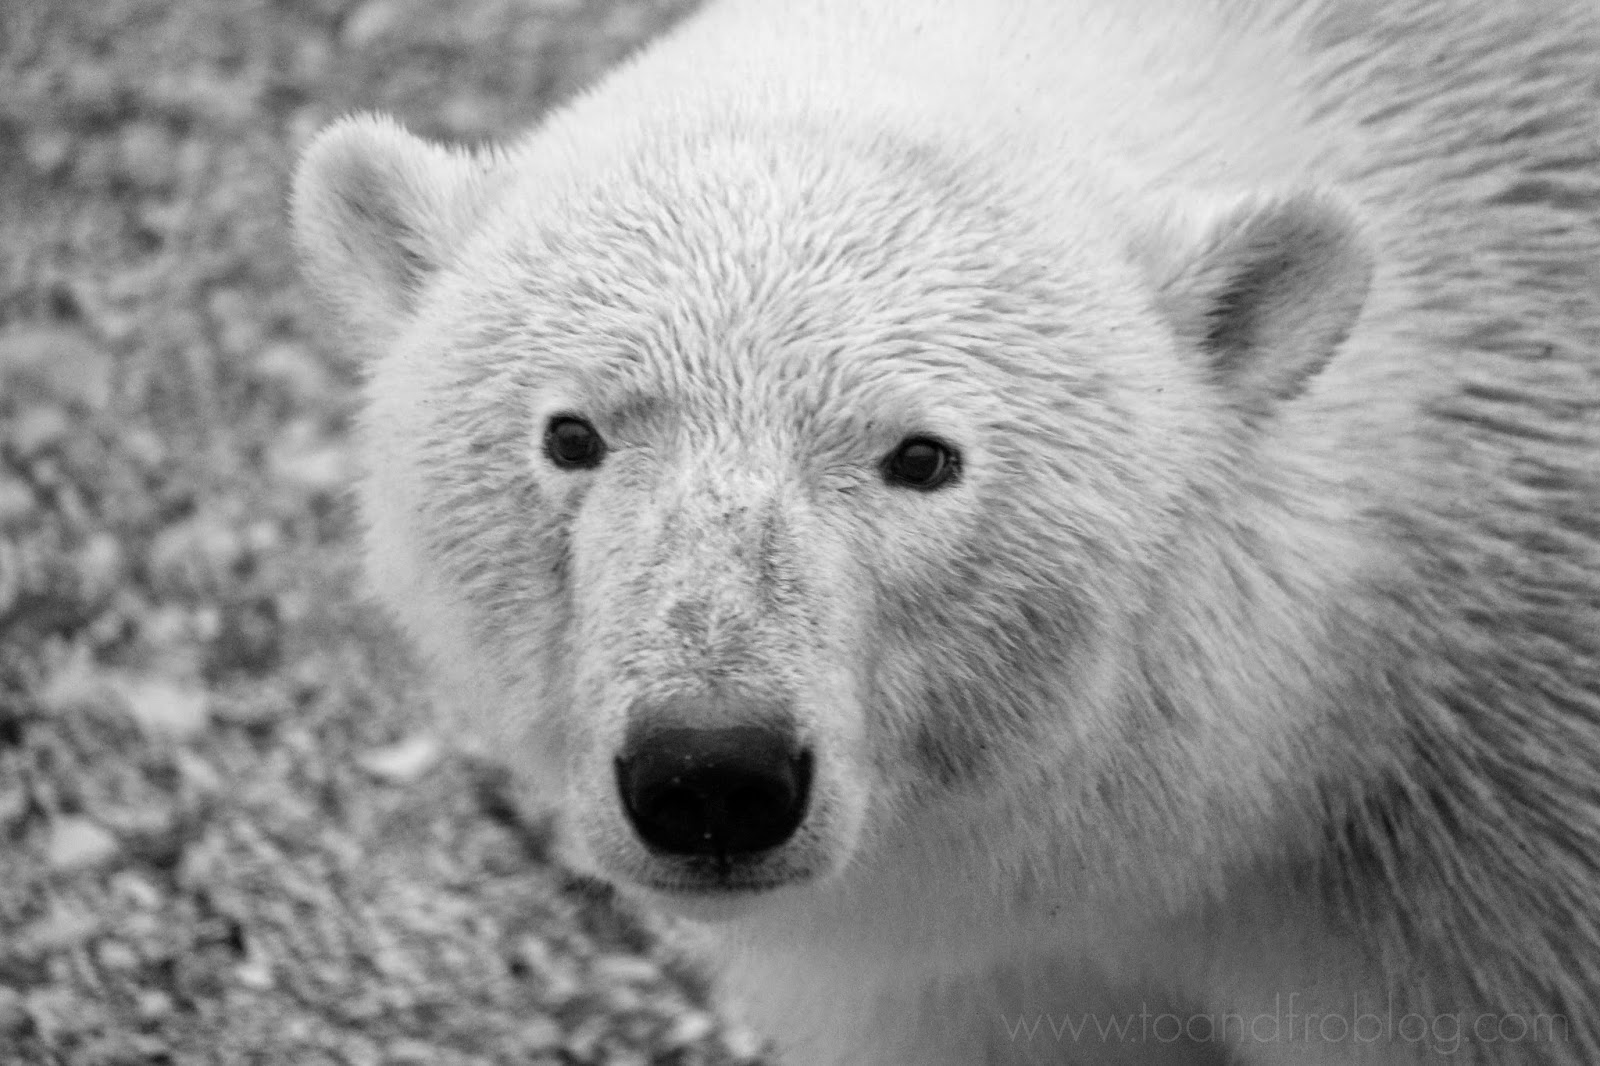 International Polar Bear Day - Polar Bear Facts